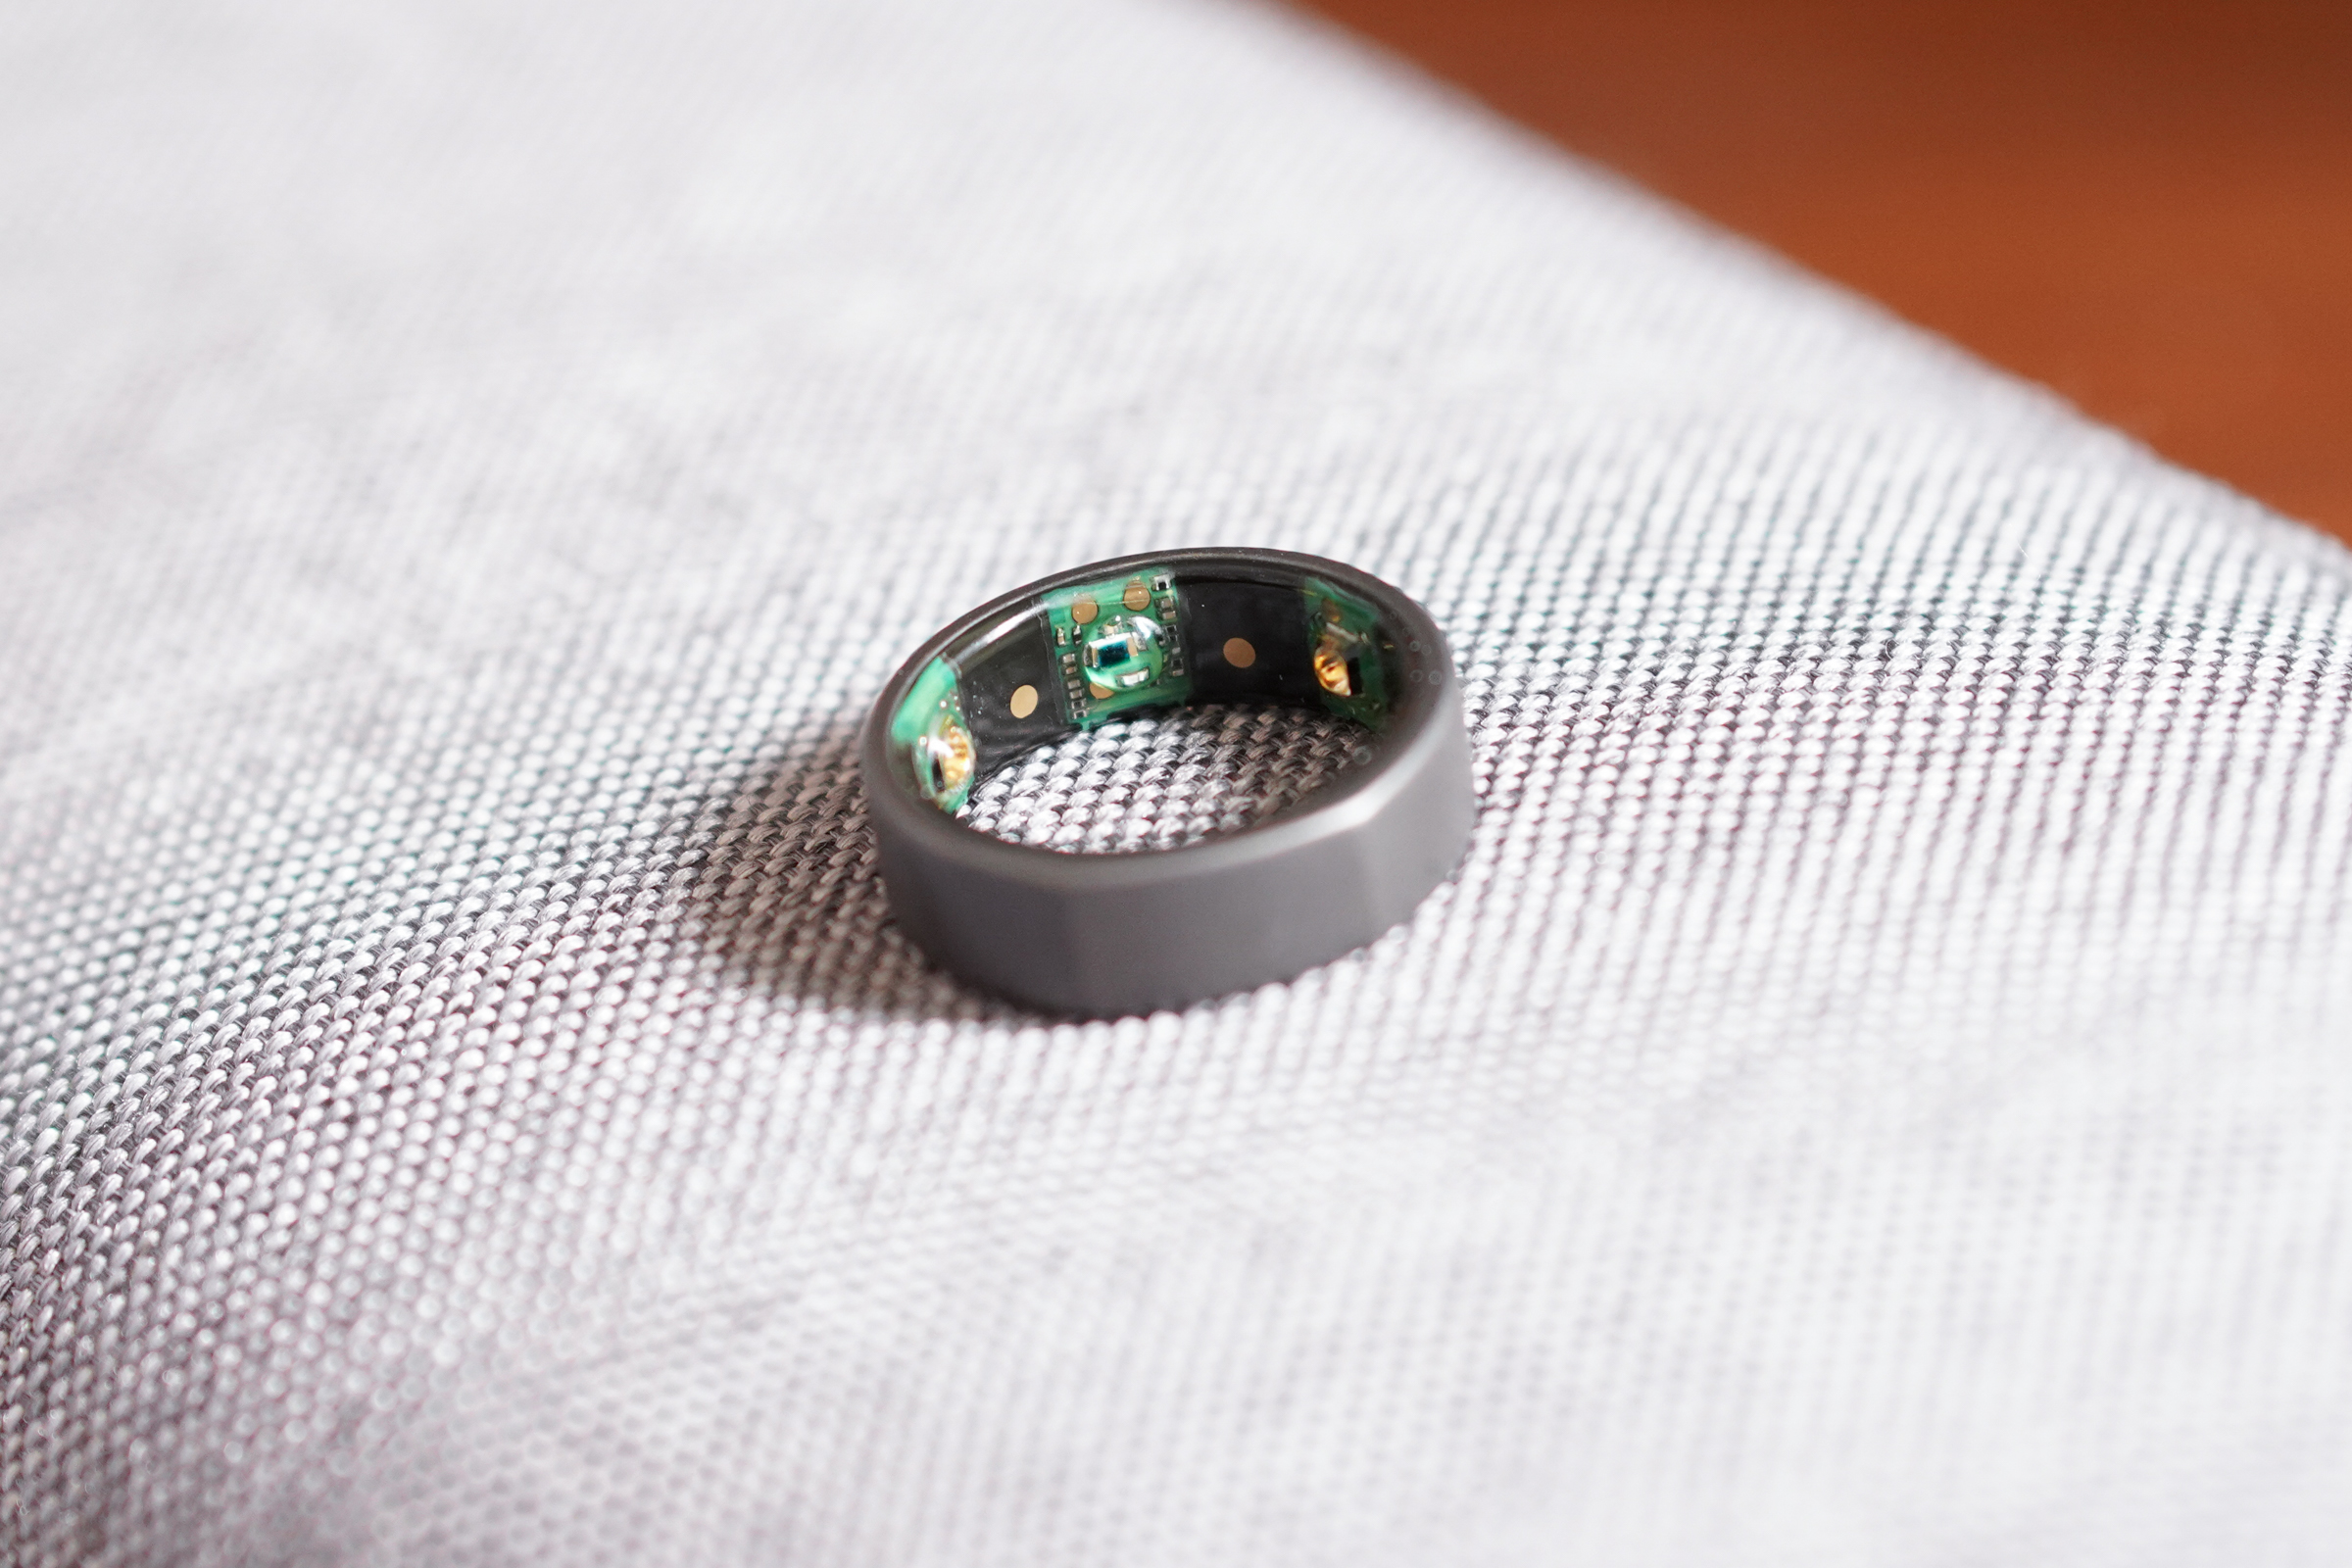 The Oura Ring is the personal health tracking device to beat in 2020 – TechCrunch